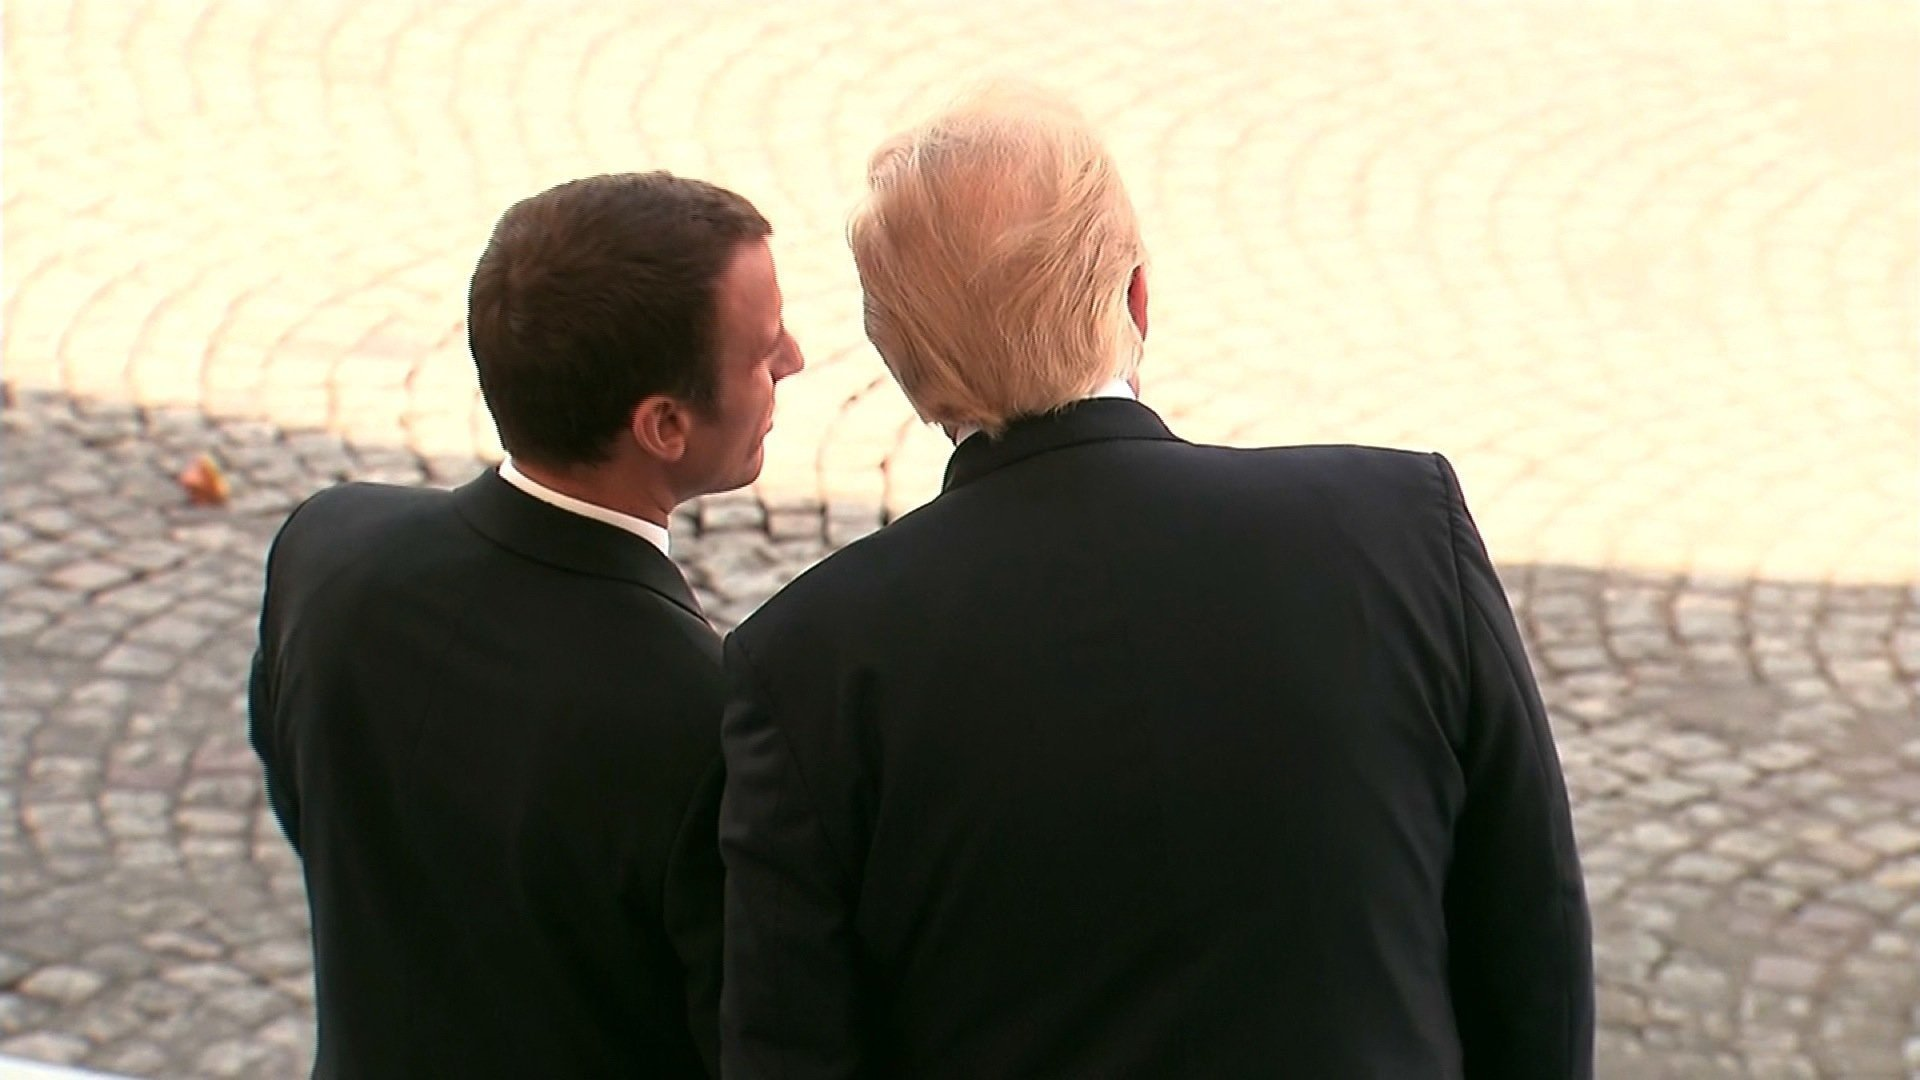 Emmanuel Macron- Donald Trump Tussle In New 25-Second Handshake Duel